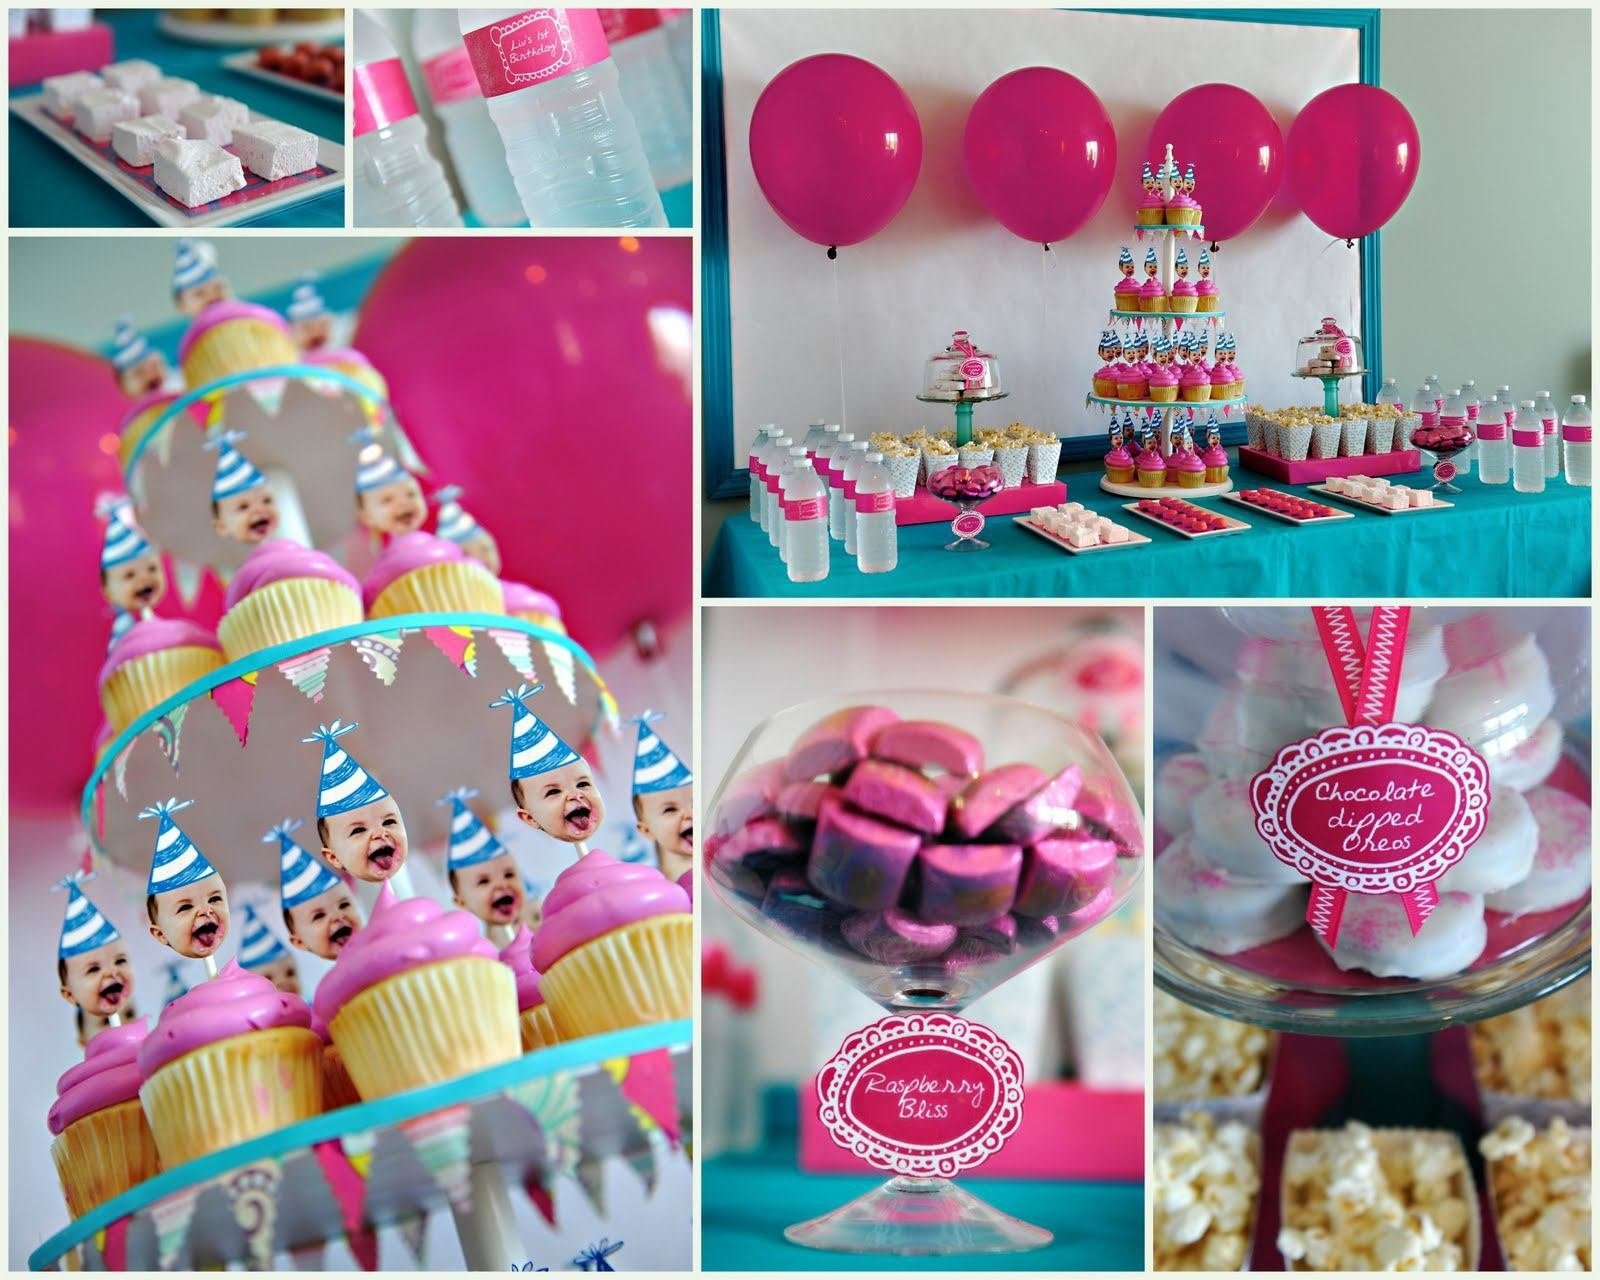 10 Great Party Favor Ideas For 1St Birthday first birthday party themes best decorations girl boy loversiq 1